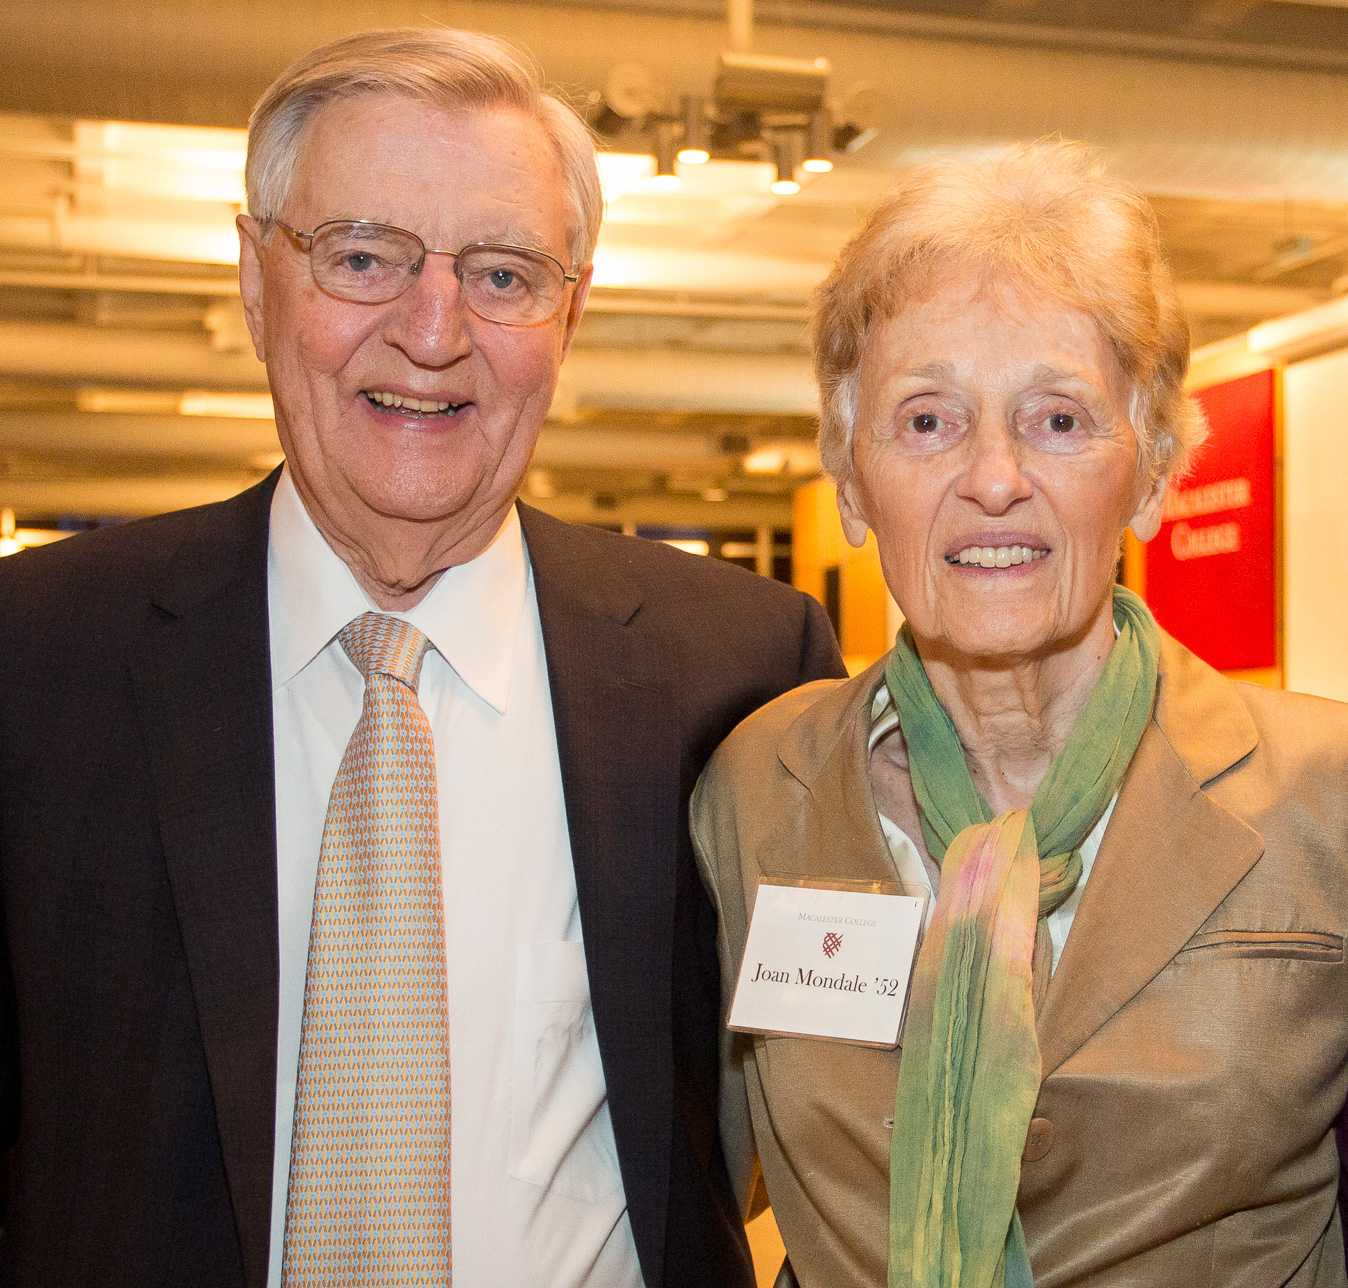 Walter and Joan Mondale. Photo courtesy of Macalester.